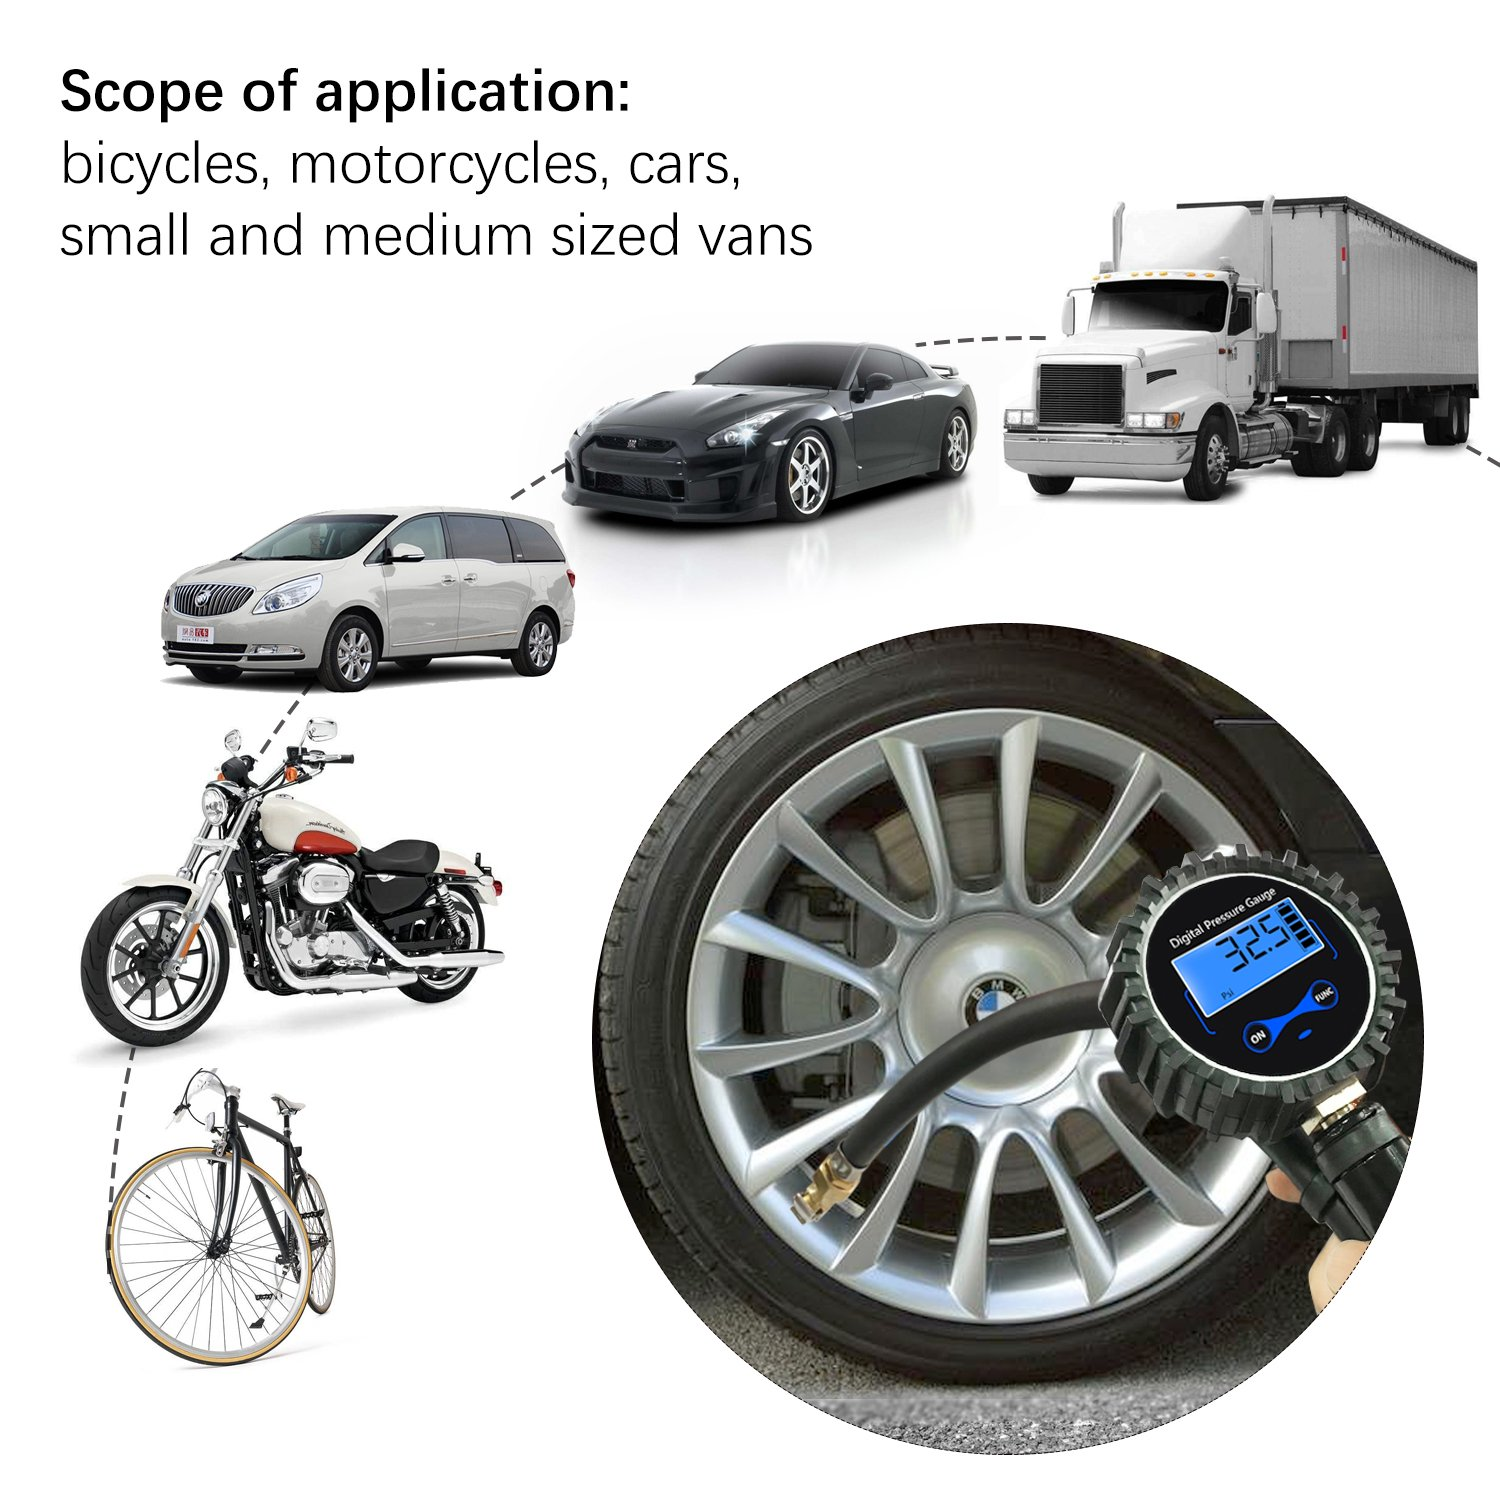 Blue Motorcycle SUV Truck,RV Bike LV12 Longruner Digital Tire Inflator with Pressure Gauge 200 PSI Air Chuck and Compressor Accessories 0.1 Display Resolution Quick Connect Coupler for Car